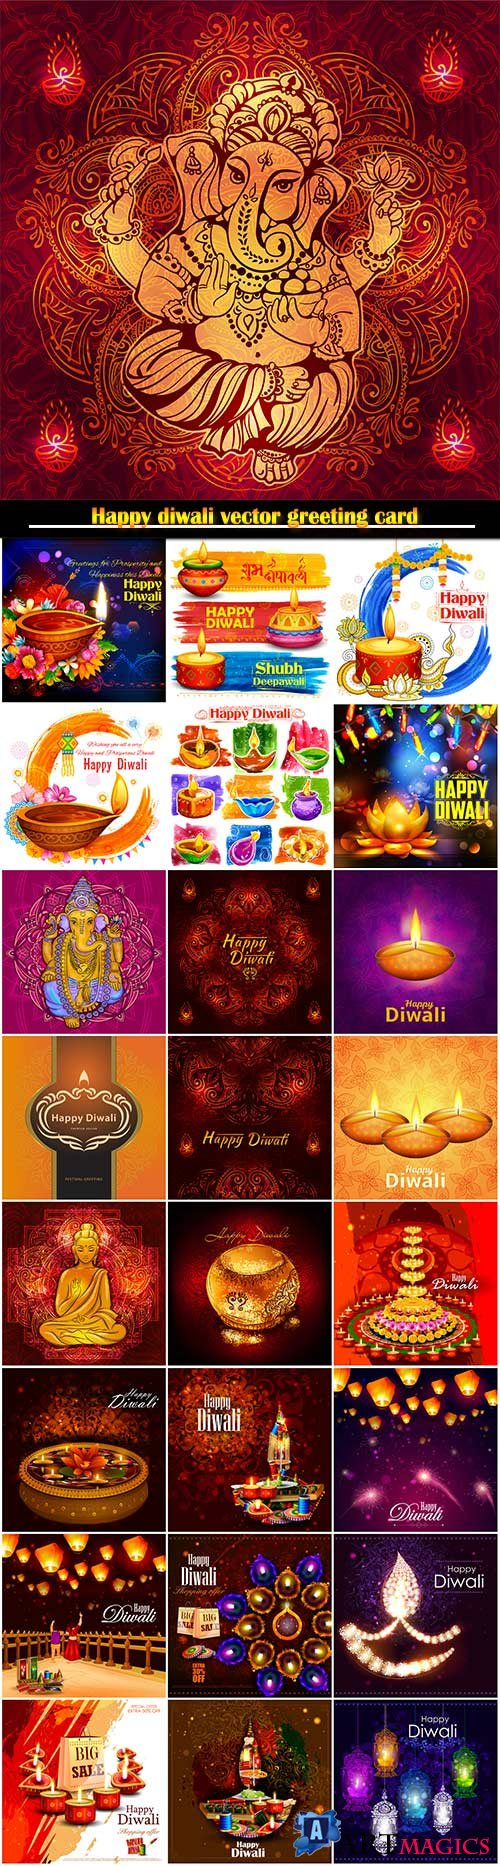 Happy diwali vector greeting card # 2